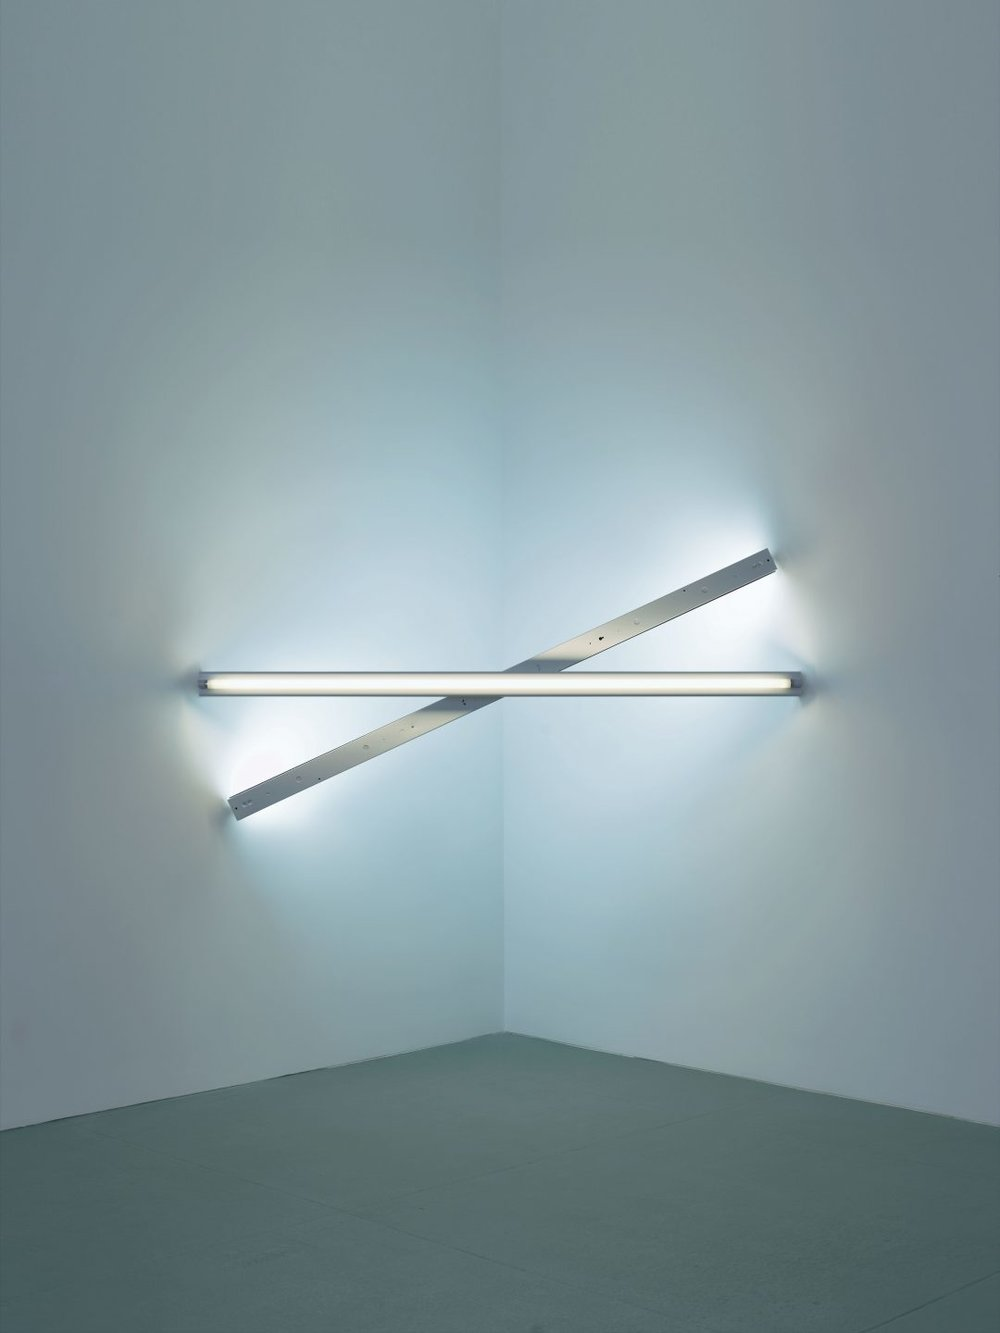 Dan Flavin untitled (to Cy Twombly) 1, 1972 cool white and daylight fluorescent light 8 ft. (244 cm) wide across a corner © 2016 Stephen Flavin/Artists Rights Society (ARS), New York; courtesy of David Zwirner, New York/London